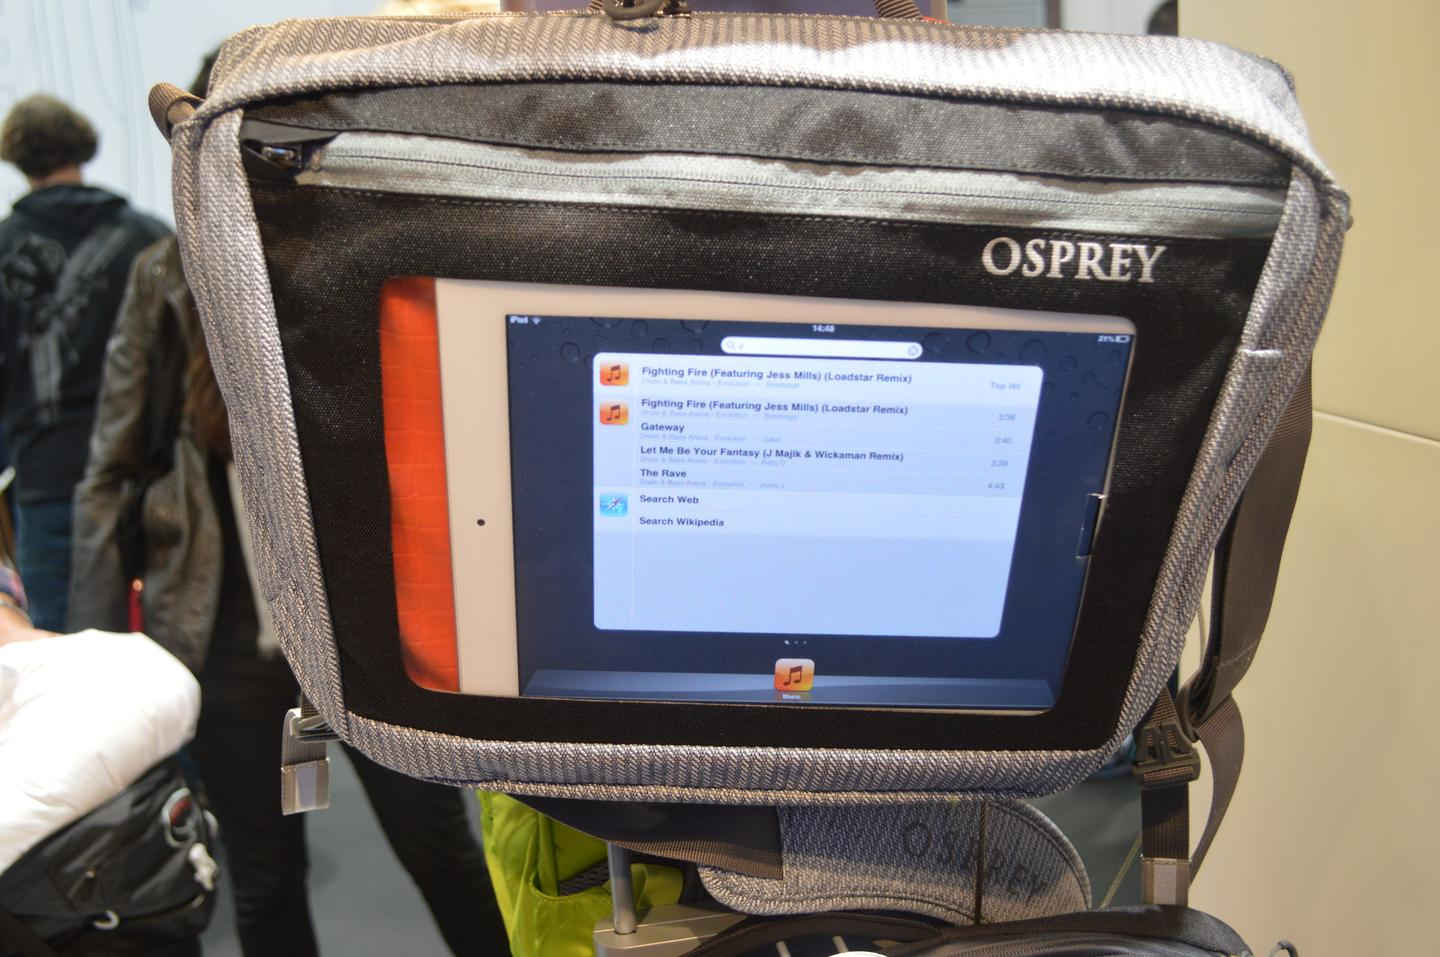 The Port provides direct access to a tablet screen